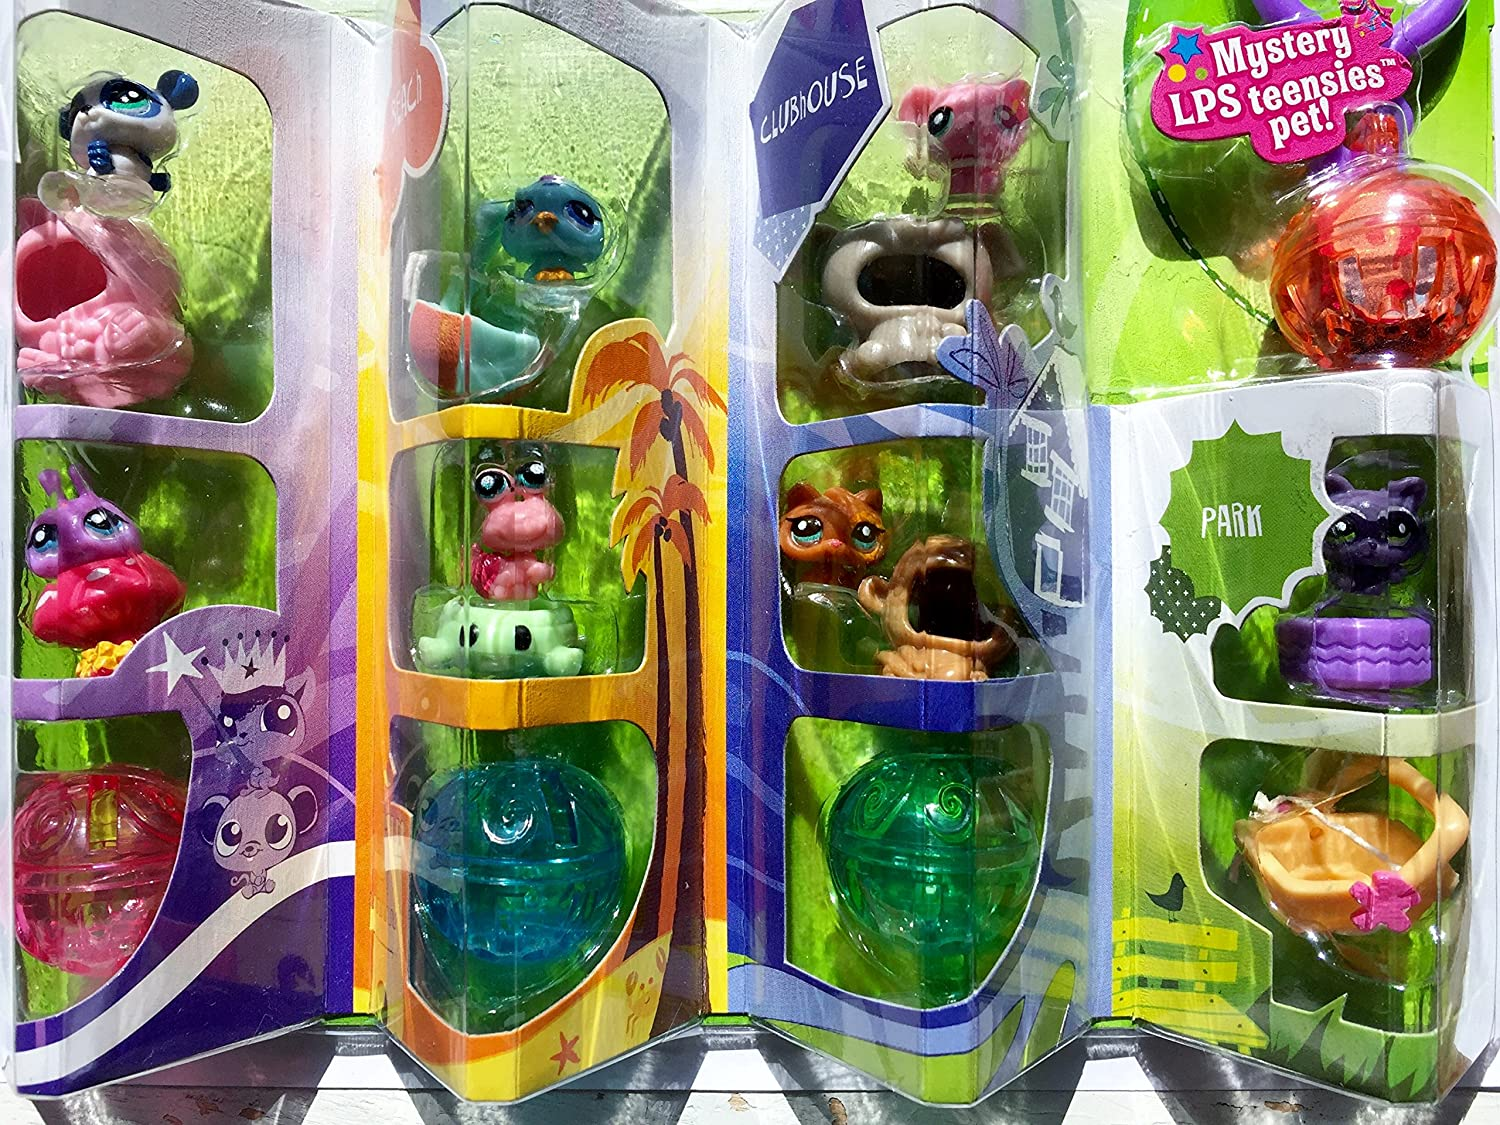 Series 2 Hasbro Teensies Intro Pack